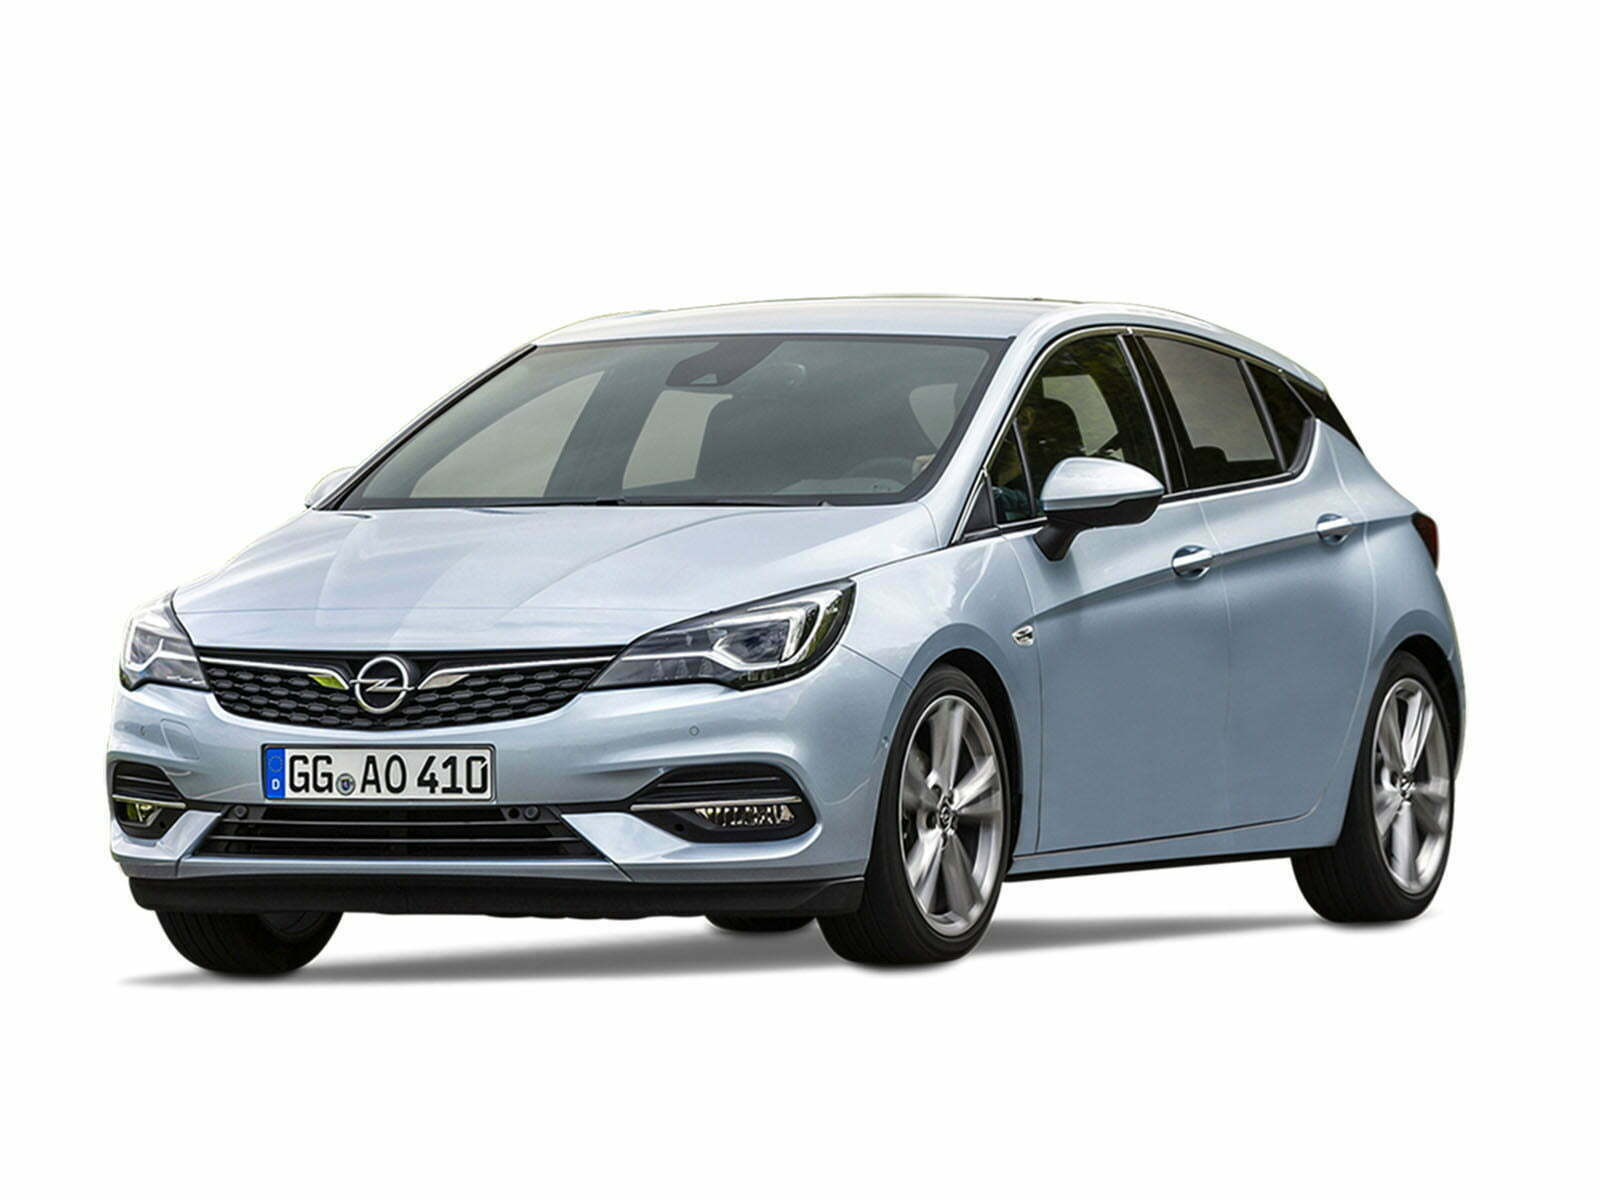 Opel Astra 1.2 Turbo 81kW/110pk Business Edition 5d